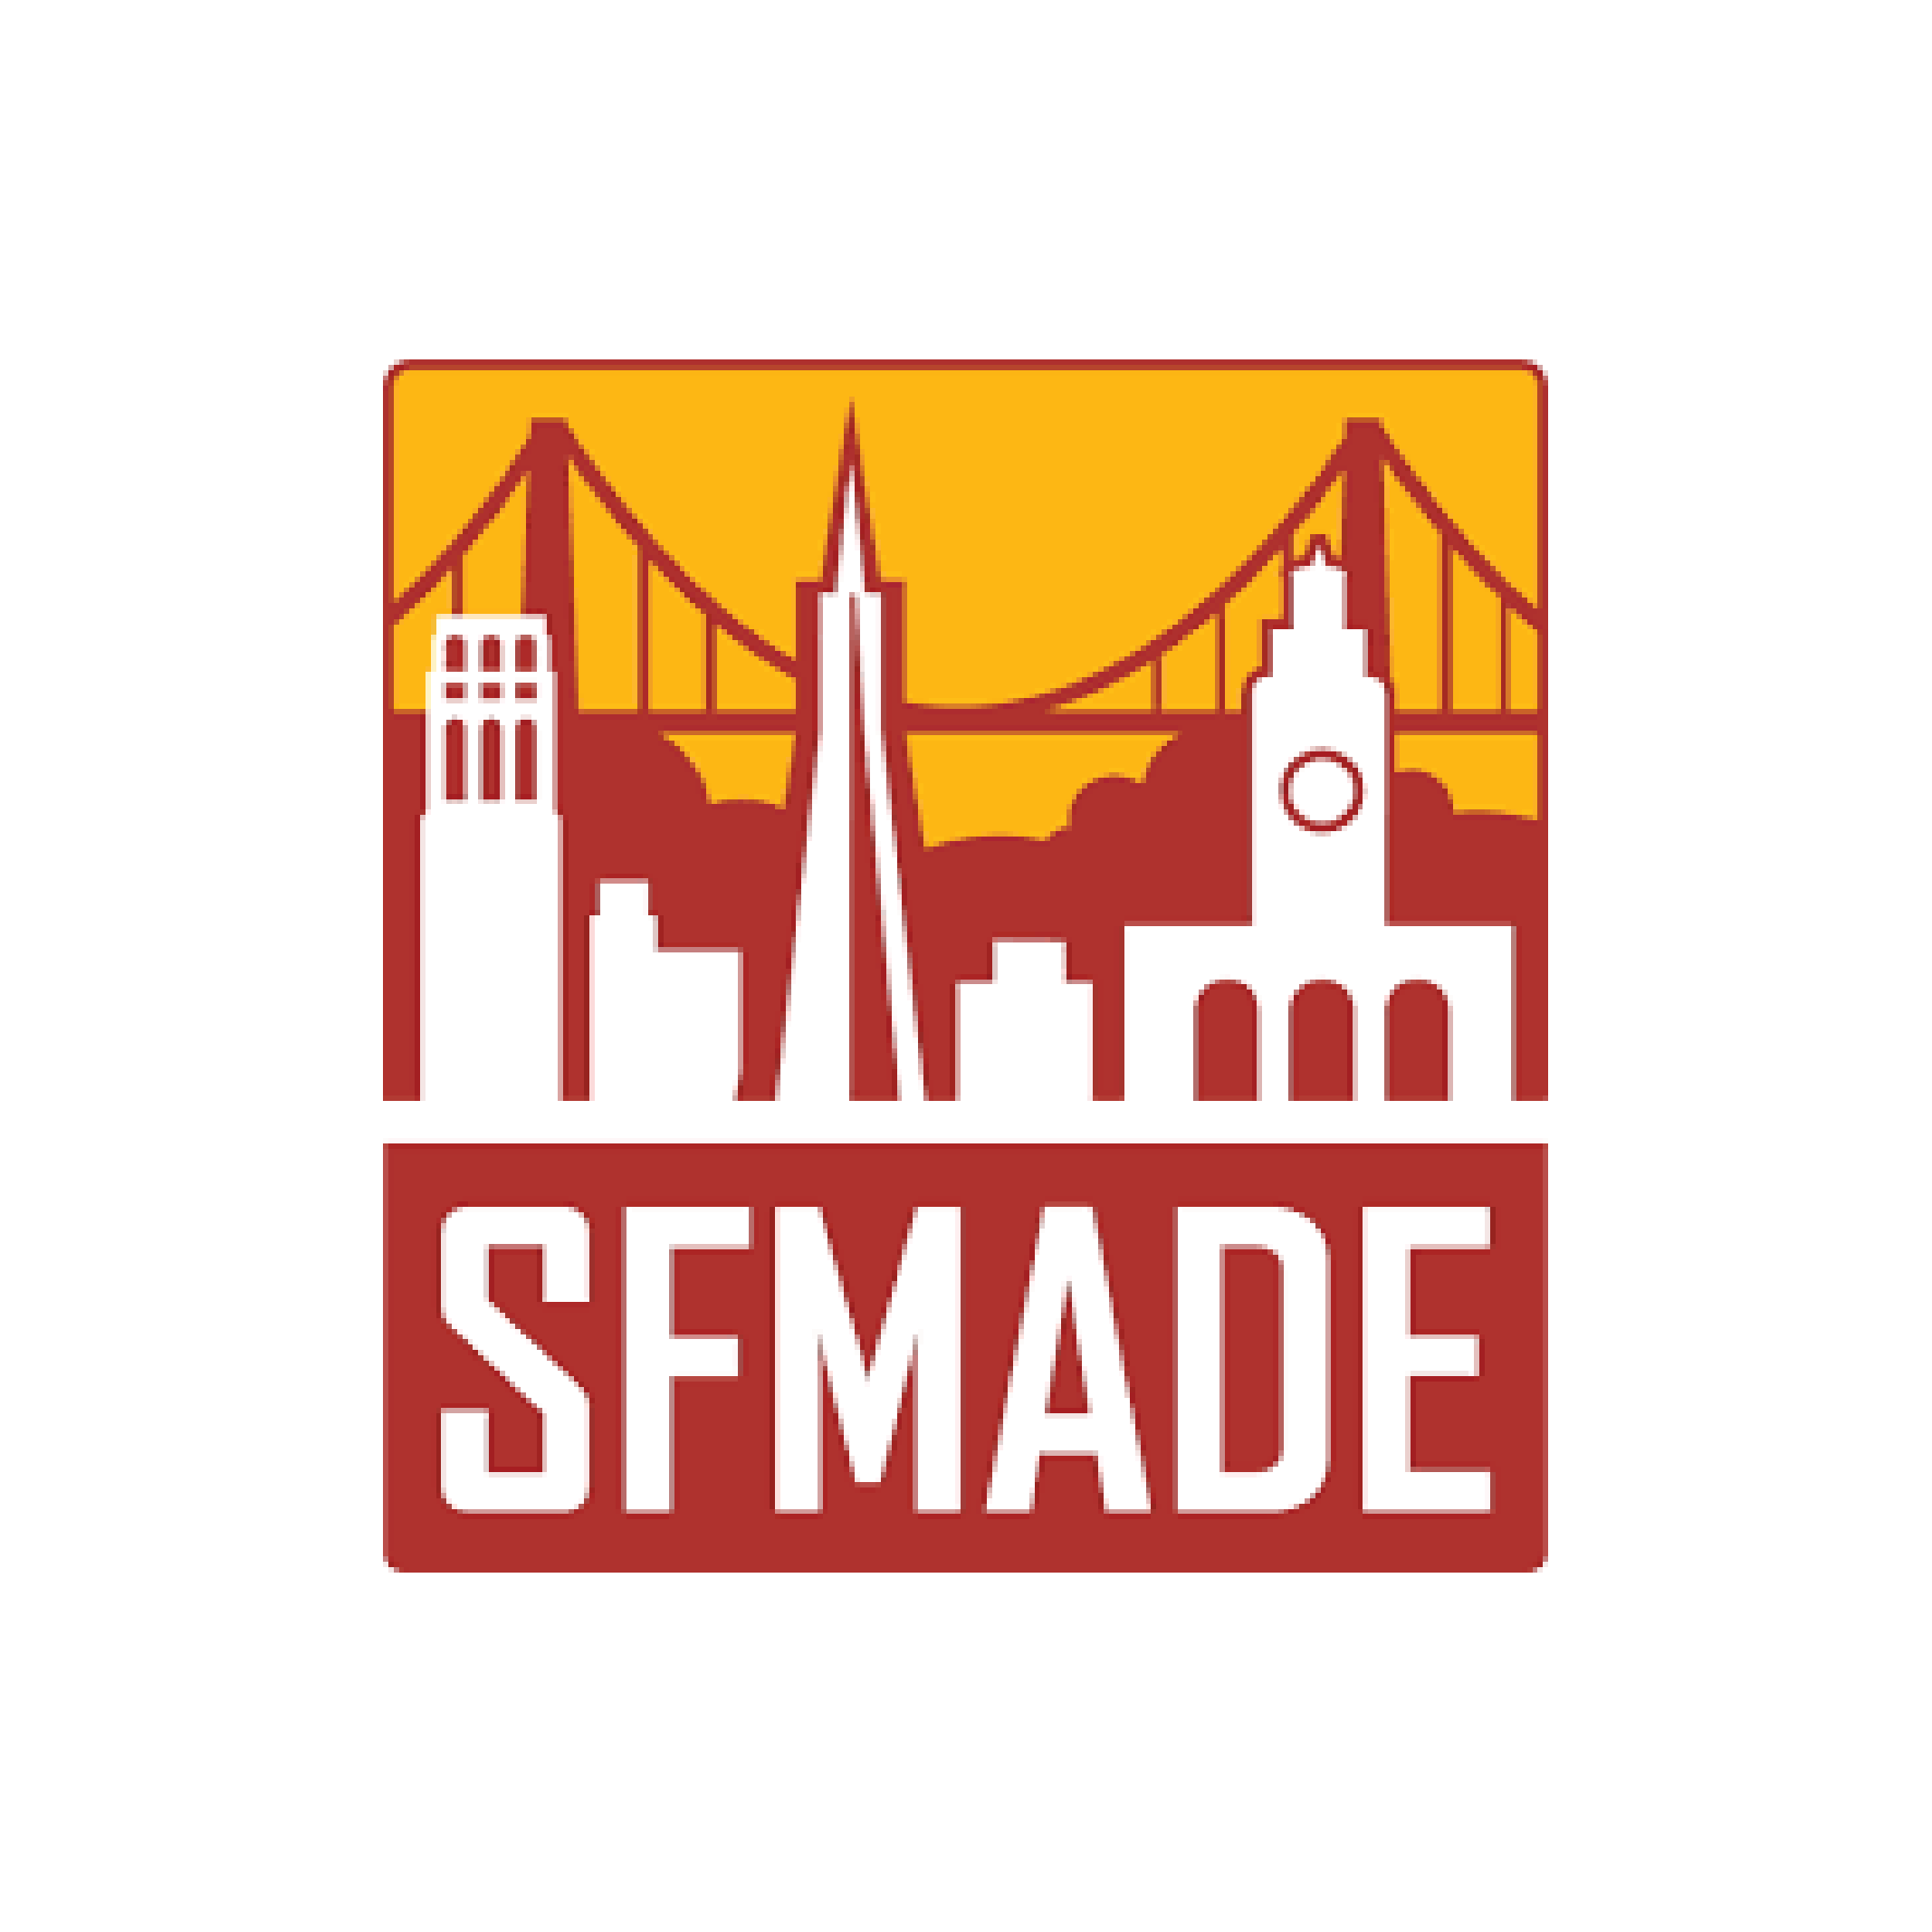 SFMade is a California 501(c)(3) non-profit corporation, established in 2010 and headquartered in San Francisco. SFMade's mission is to build and support a vibrant manufacturing sector in San Francisco that sustains companies producing locally-made products, encourages entrepreneurship and innovation, and creates employment opportunities for a diverse local workforce. SFMade currently engages more than 650 manufacturers across San Francisco who collectively sustain more than 5000 jobs.